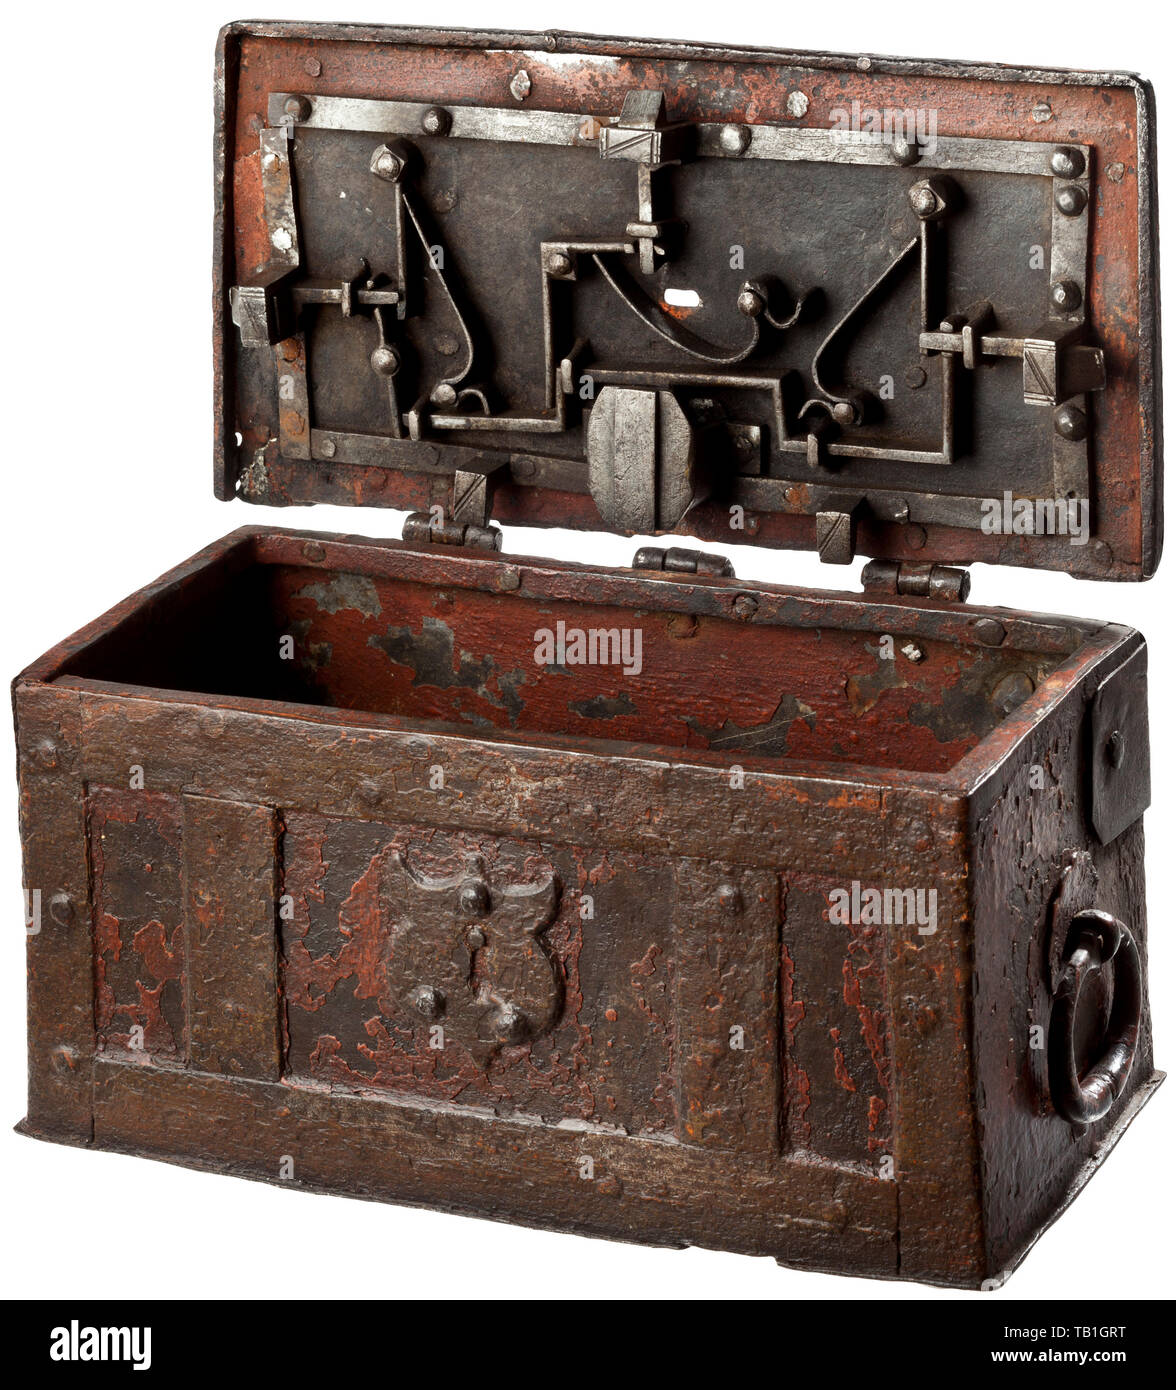 A German painted iron casket, mid-16th century, The rectangular casket reinforced with iron bands, with a hinged lid and a false lock on the front. The locking mechanism with three spring-loaded latches on the inside of the lid, the keyhole with a hasp, replaced key. A movable carrying handle on each side. Several older repairs. Dimensions 13 x 24 x 12.5 cm. handicrafts, handcraft, craft, object, objects, stills, clipping, clippings, cut out, cut-out, cut-outs, historic, historical, Additional-Rights-Clearance-Info-Not-Available - Stock Image